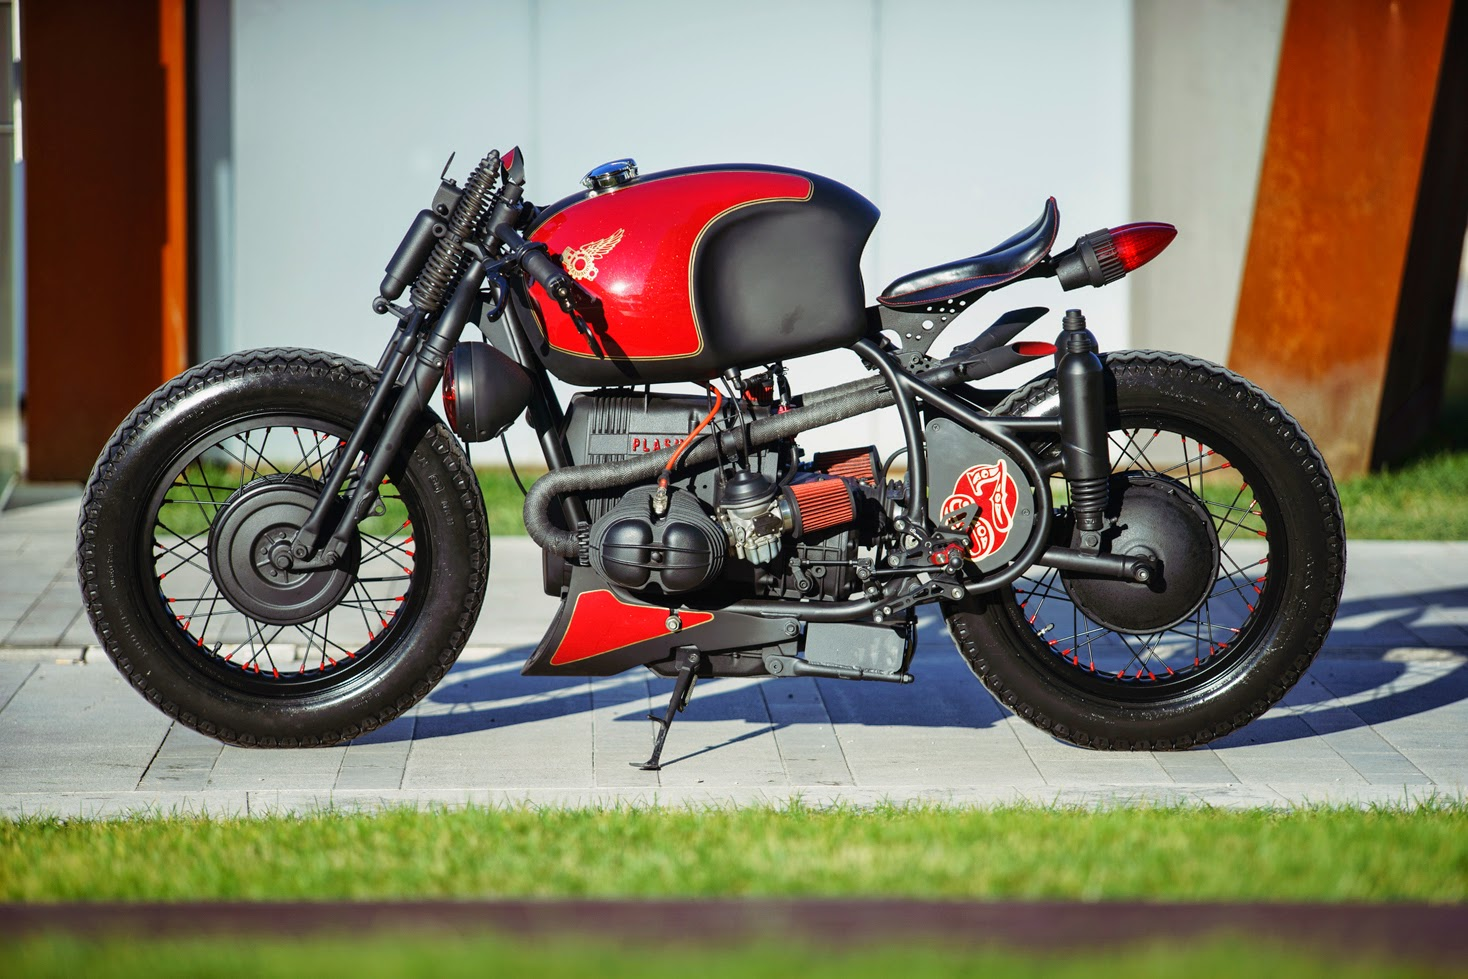 Connu Plasma Customs BMW R65 ~ Return of the Cafe Racers AH87